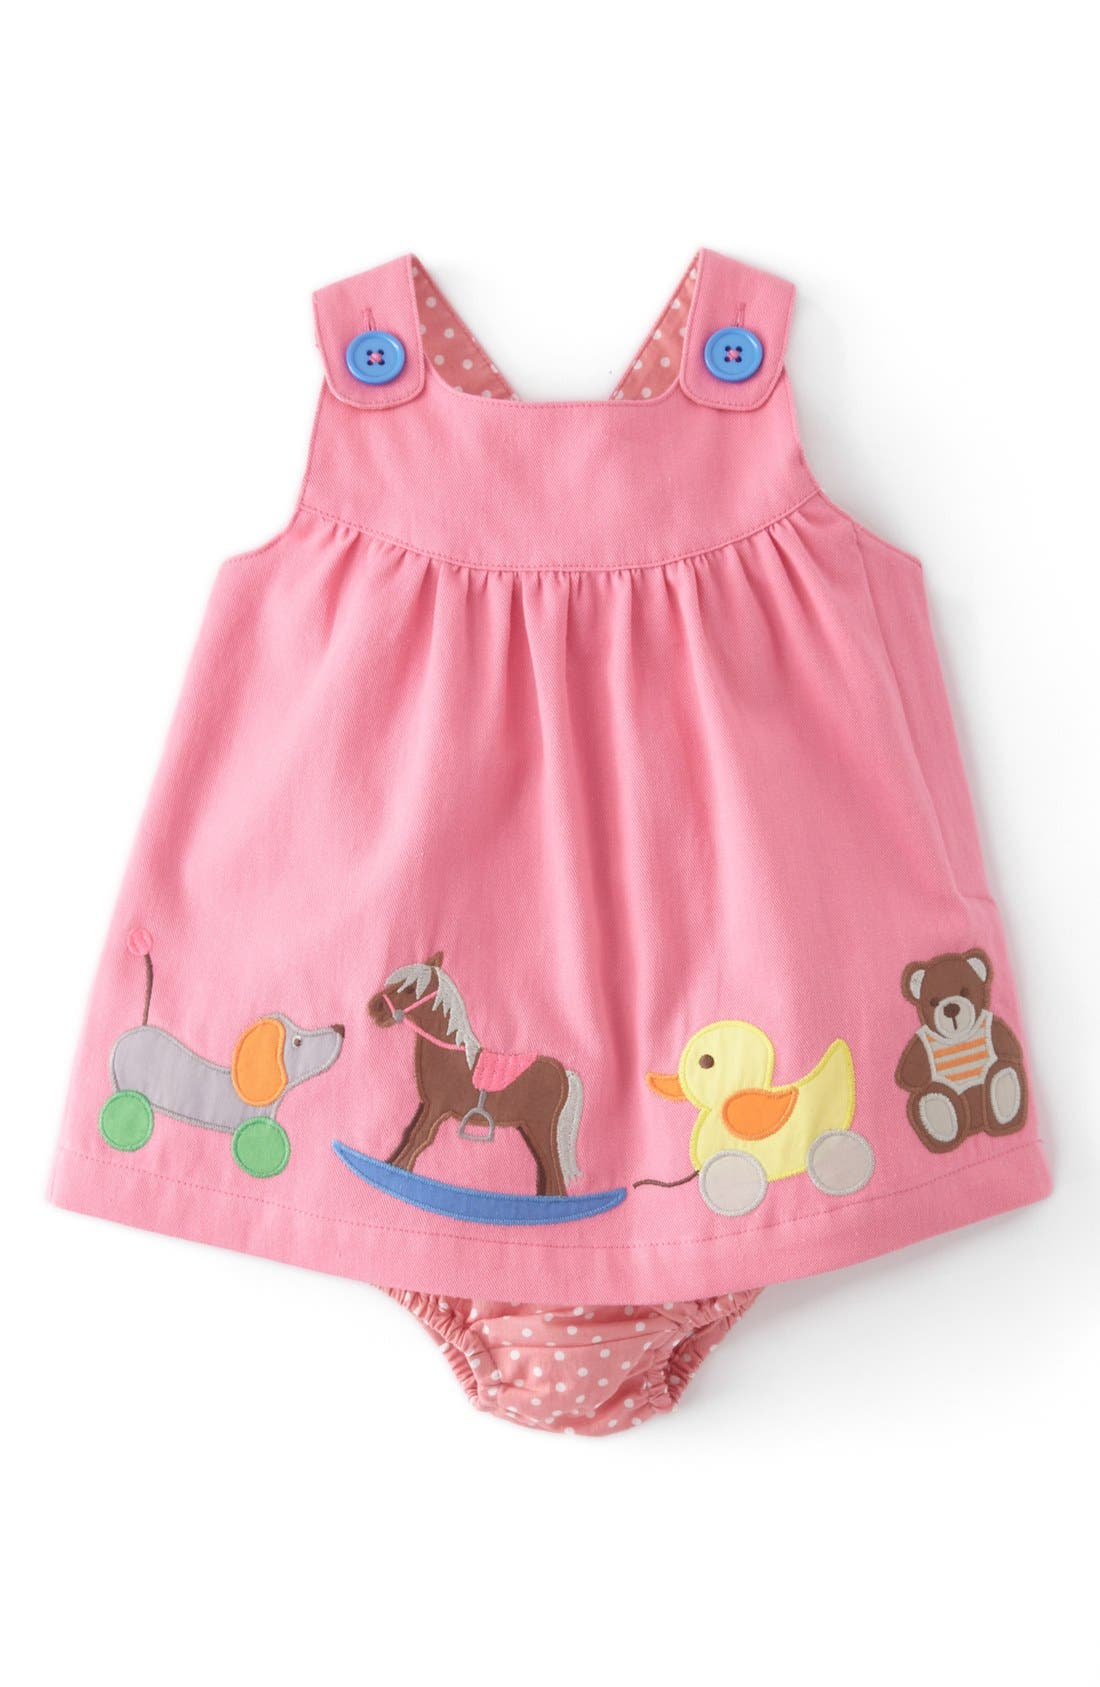 Alternate Image 1 Selected - Mini Boden Appliqué Button Strap Dress (Baby Girls)